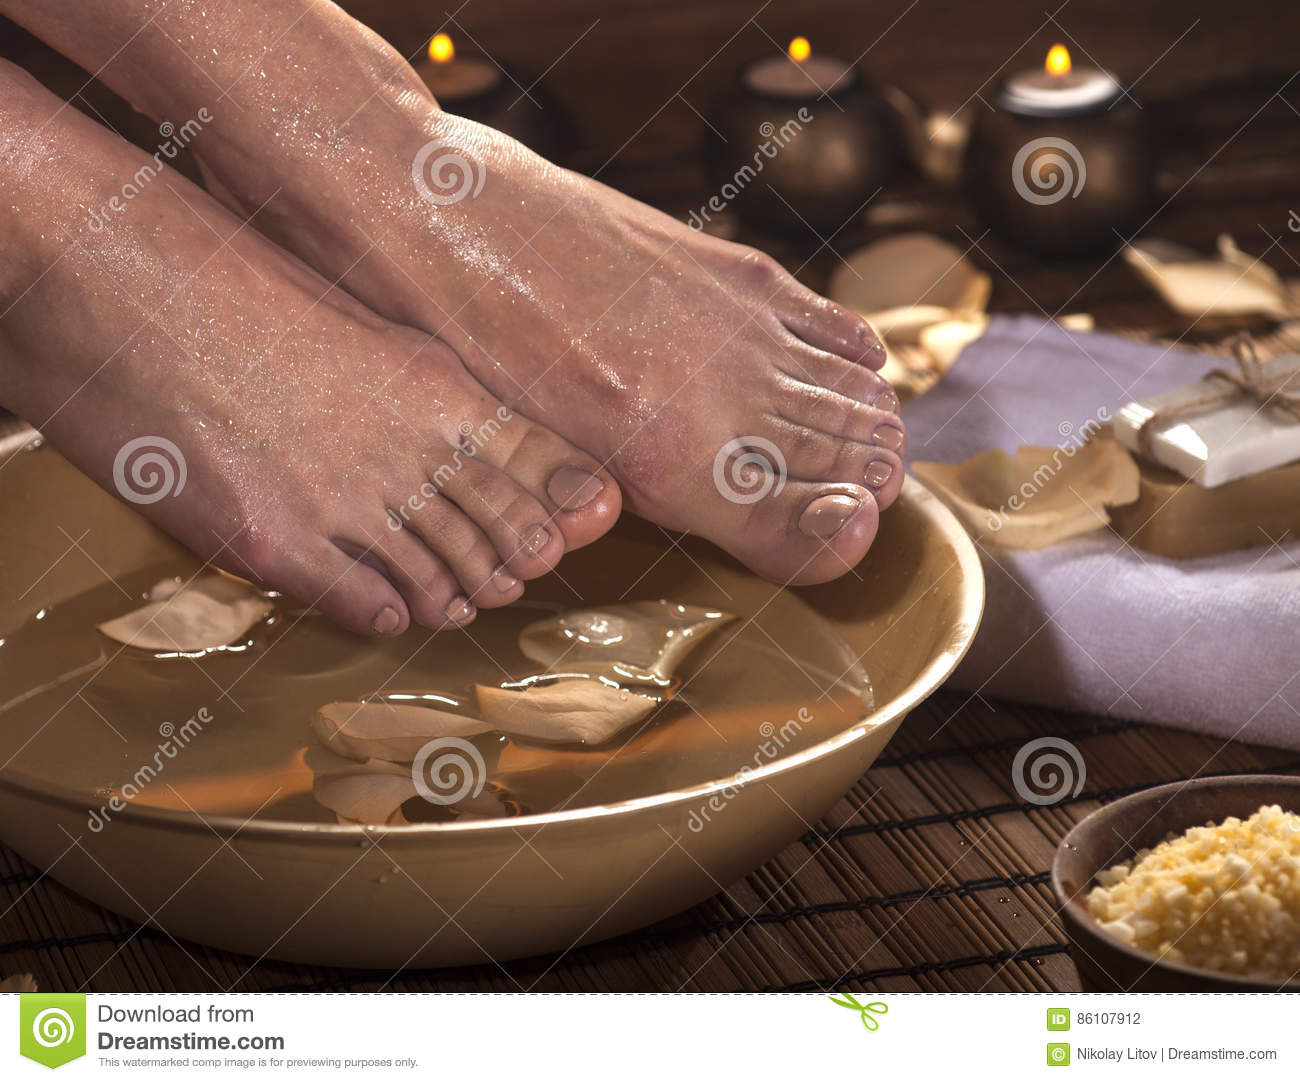 Foot Spa Treatment stock photo. Image of bath, care, massage - 86107912